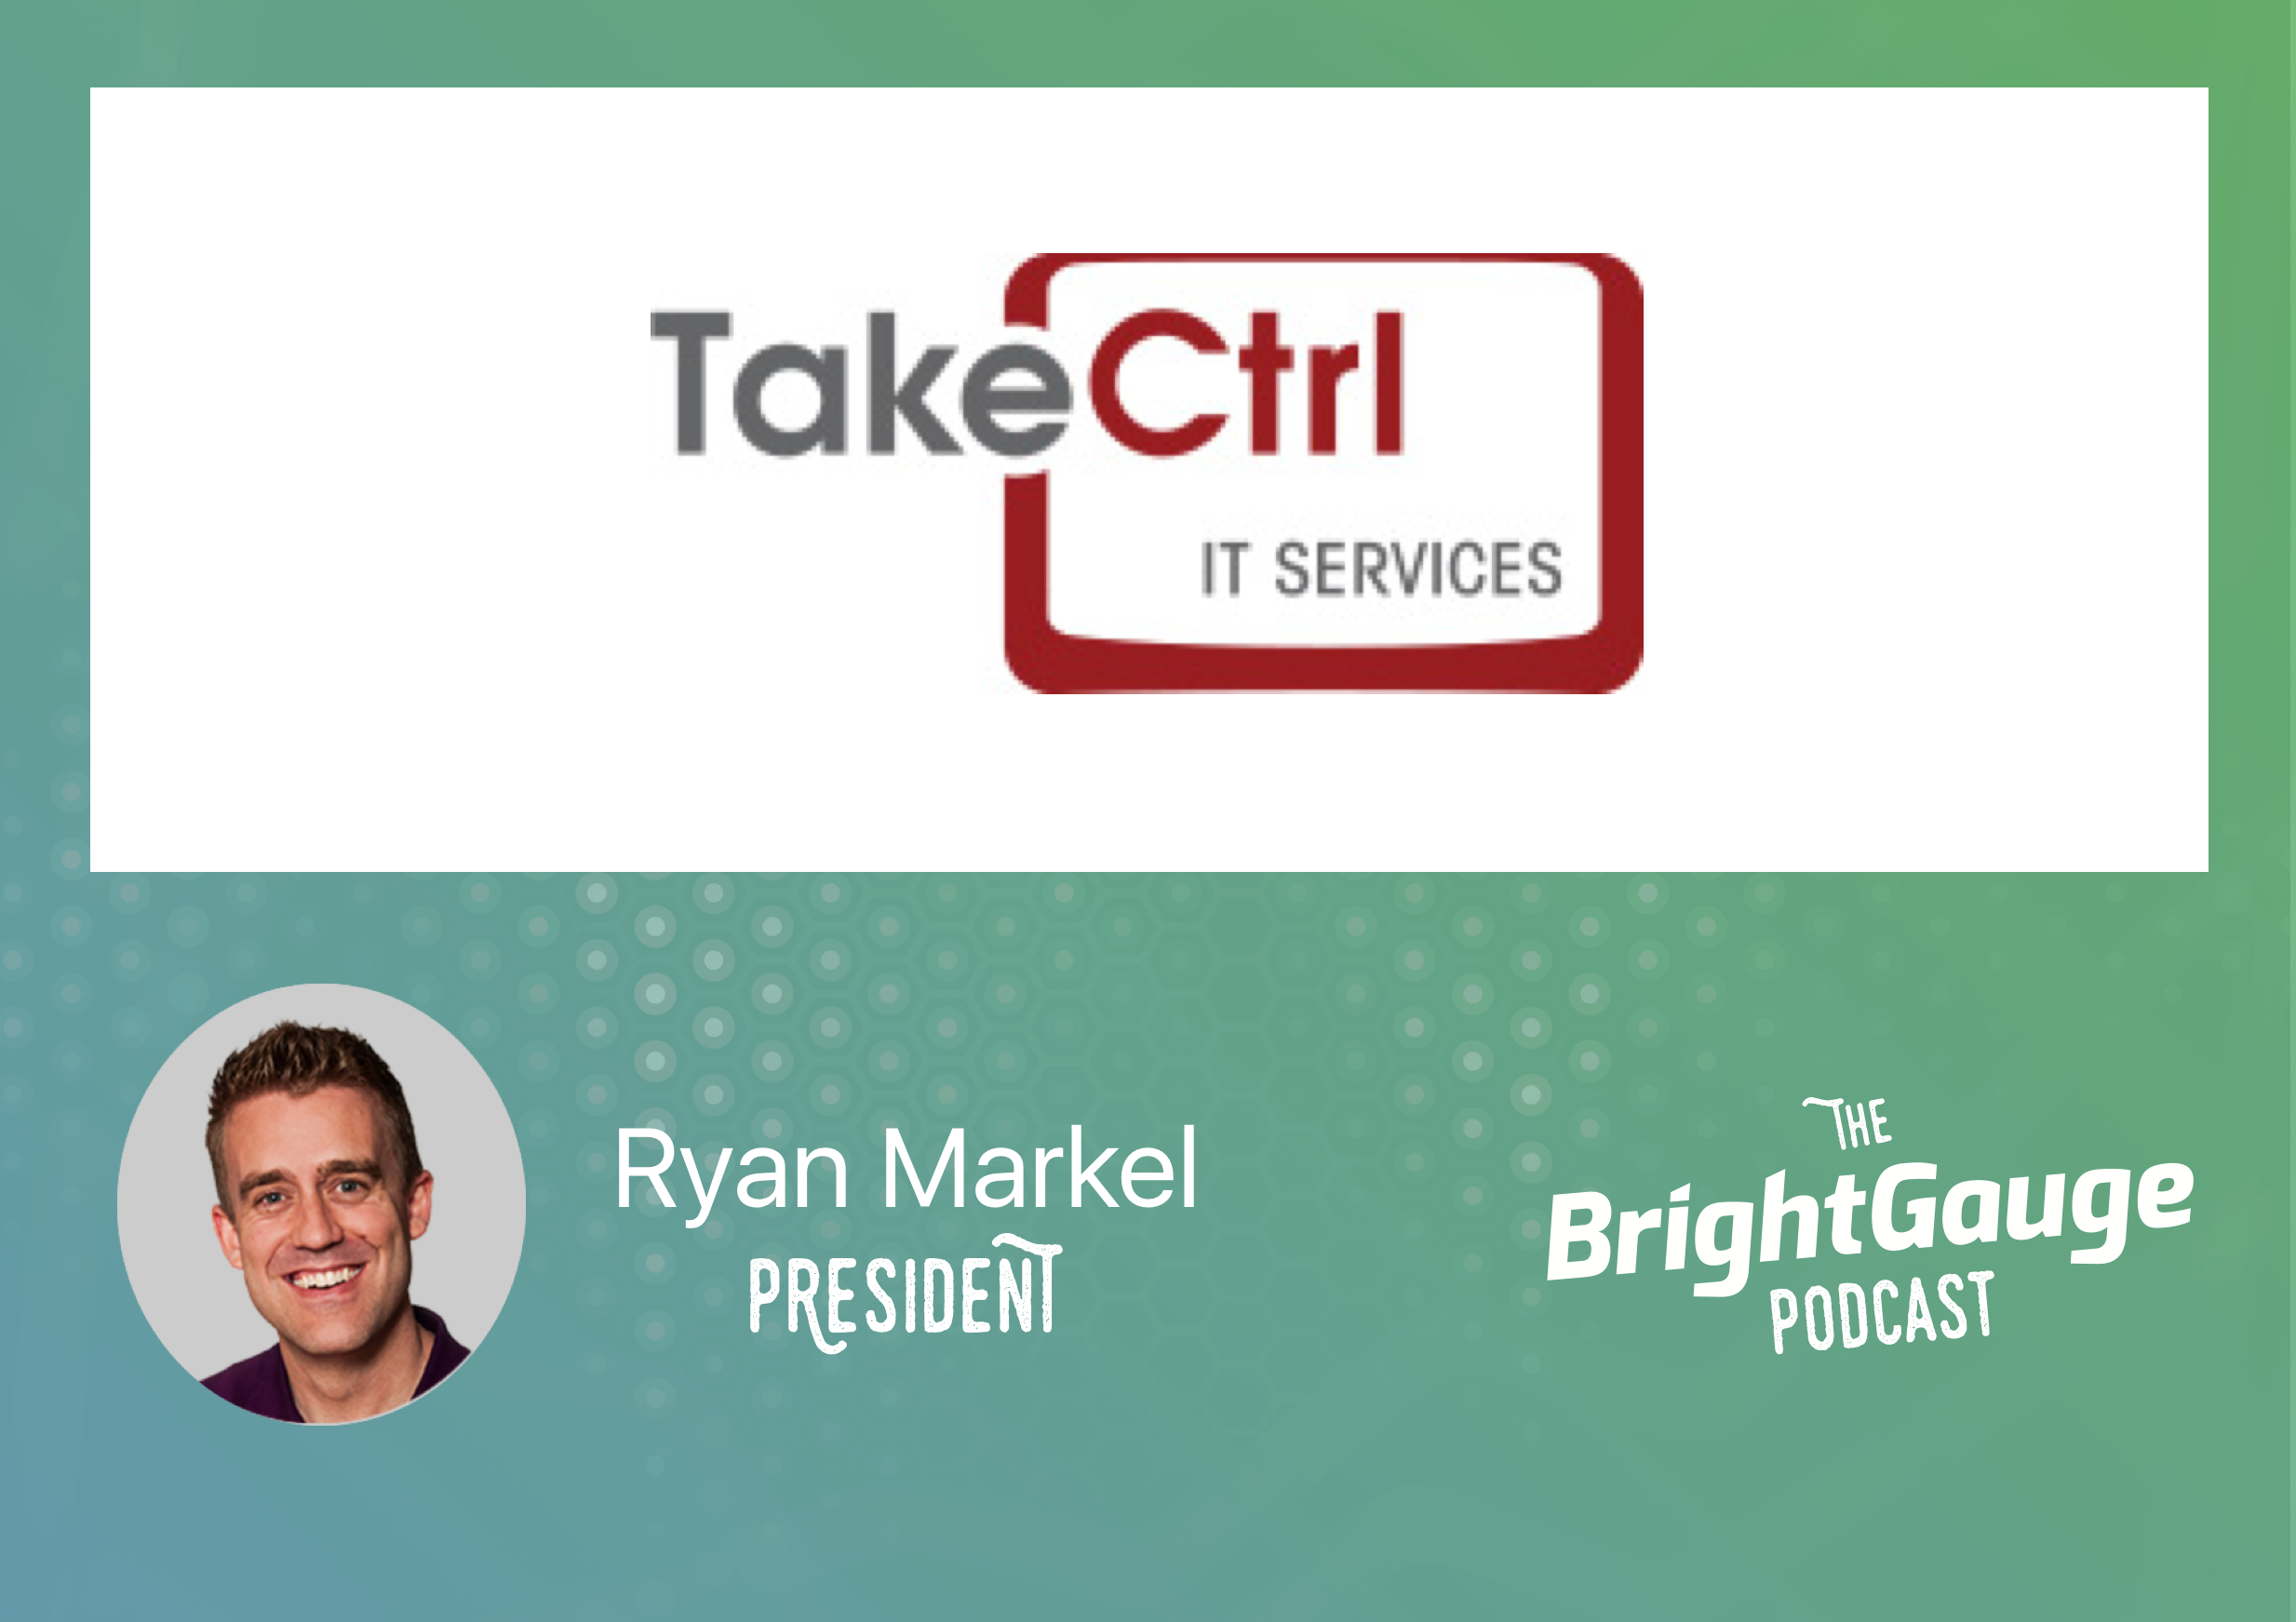 [Podcast] Episode 21 with Ryan Markel of Take Ctrl